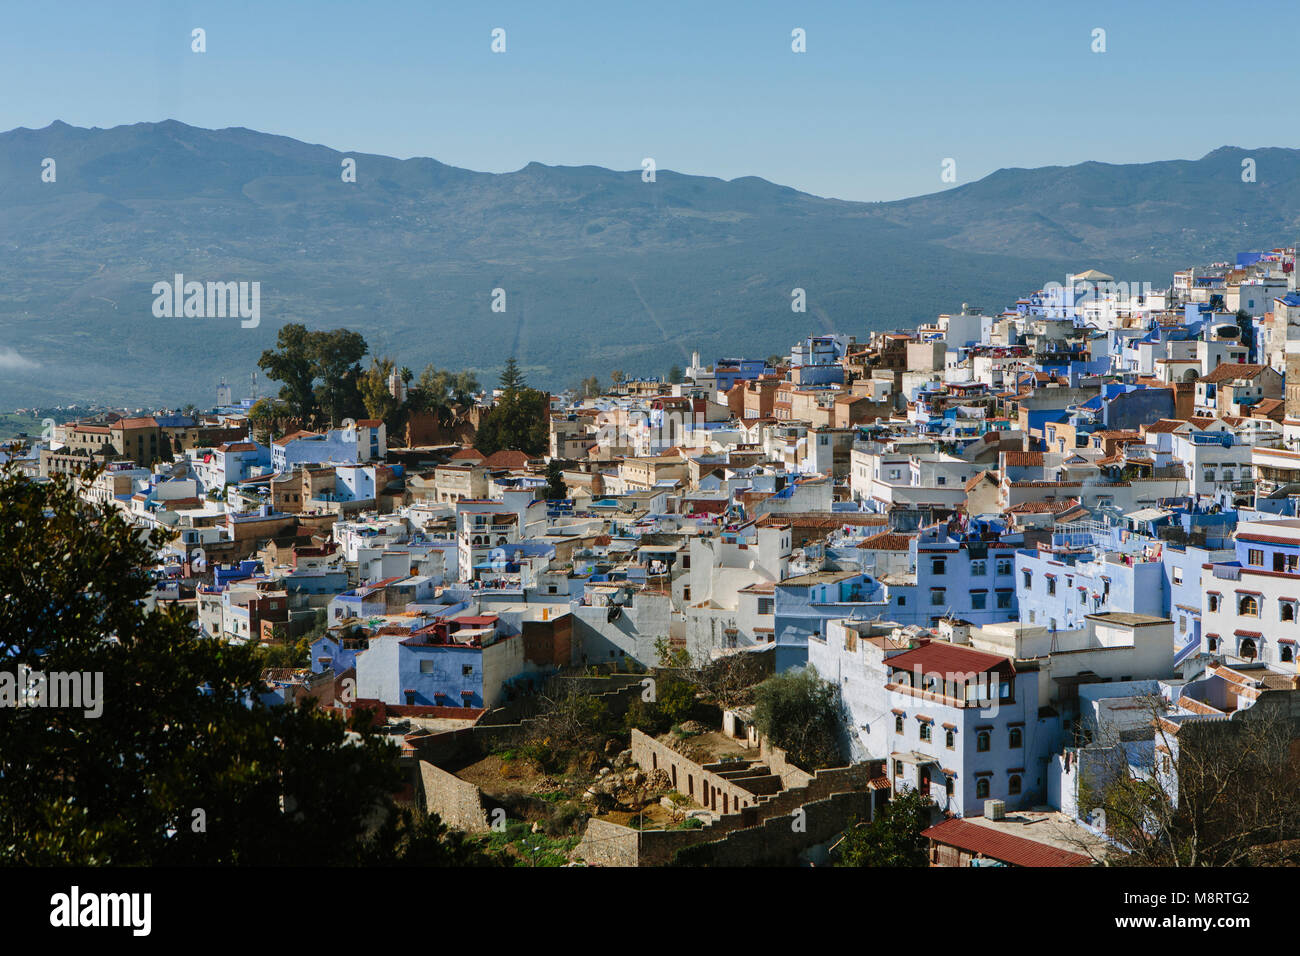 High angle view of cityscape against mountain - Stock Image